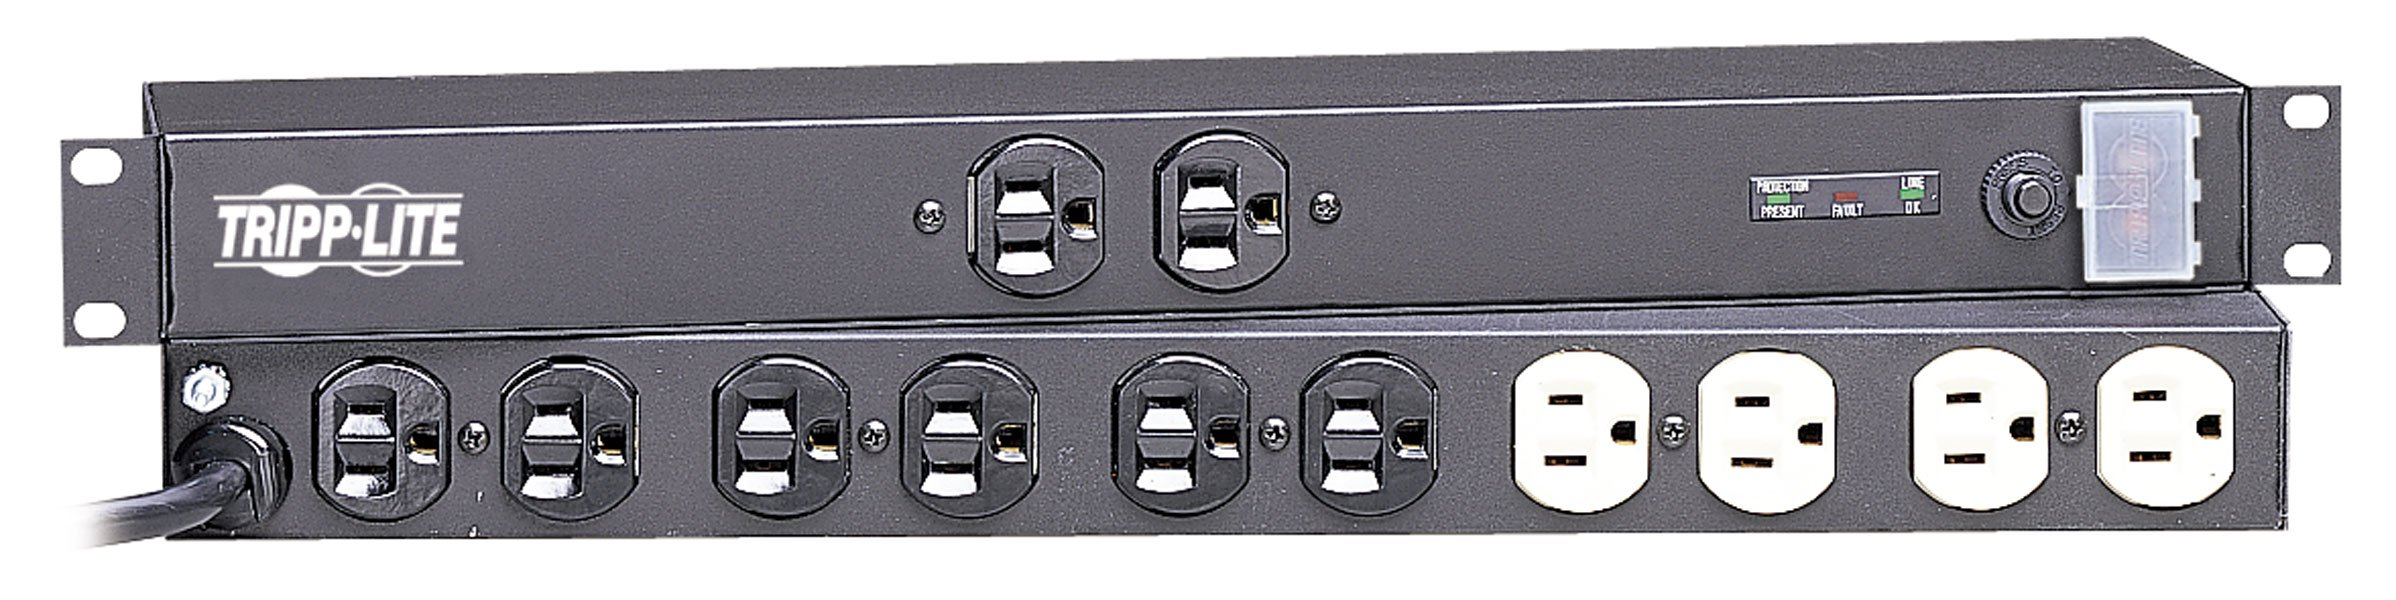 Tripp Lite 12 Outlet Isobar Network-Grade Rackmount PDU, 15A Surge Protected Power Strip, 15ft Cord with 5-15P (IBAR12)